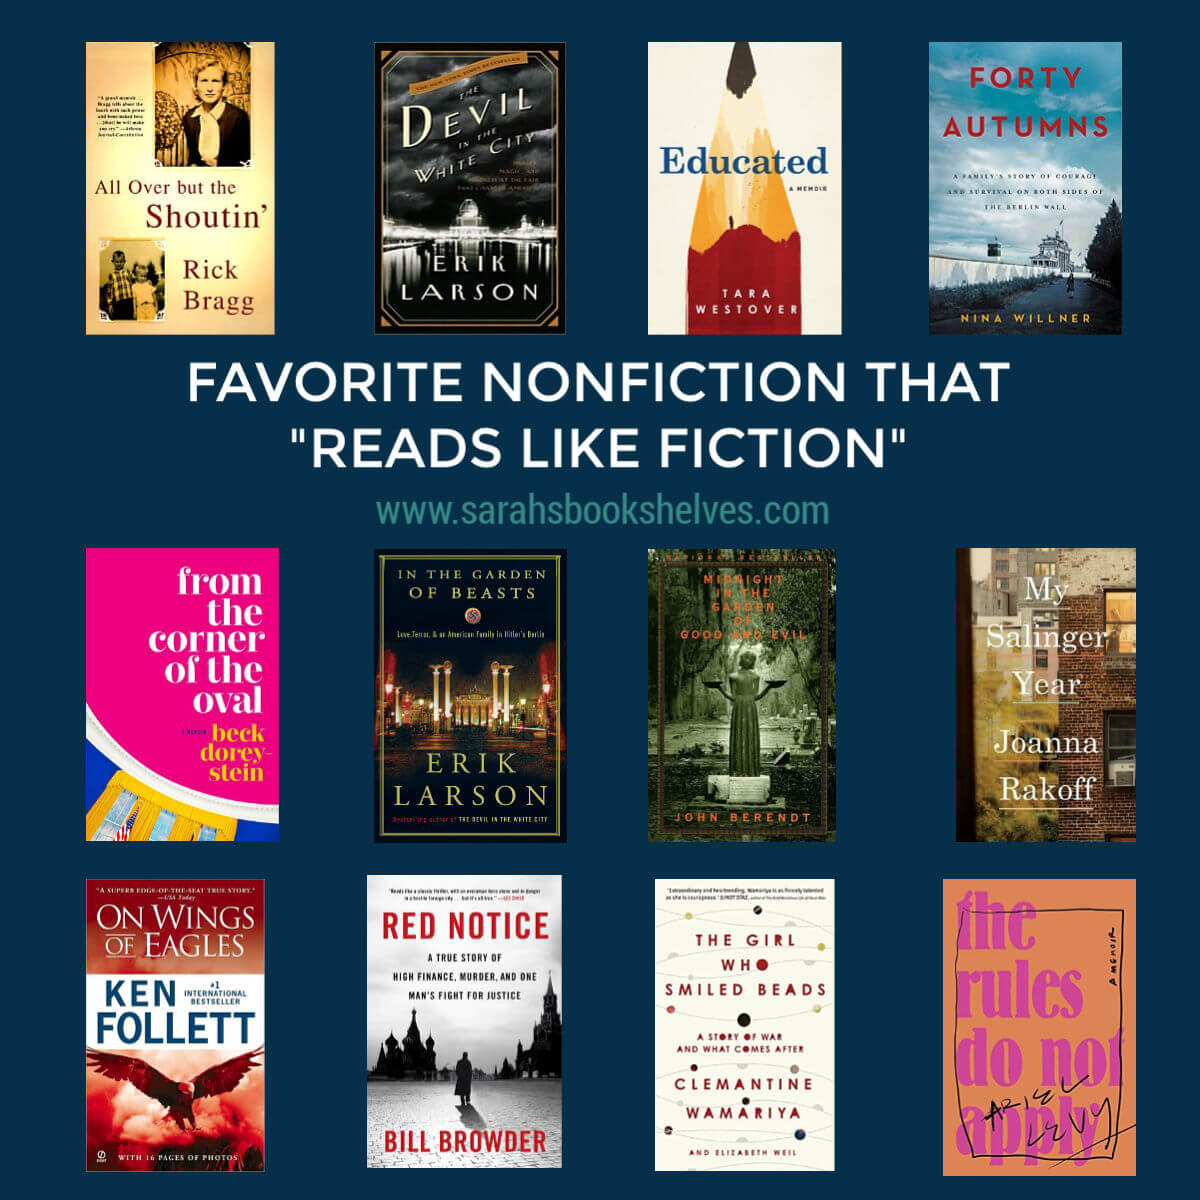 Nonfiction That Reads Like Fiction